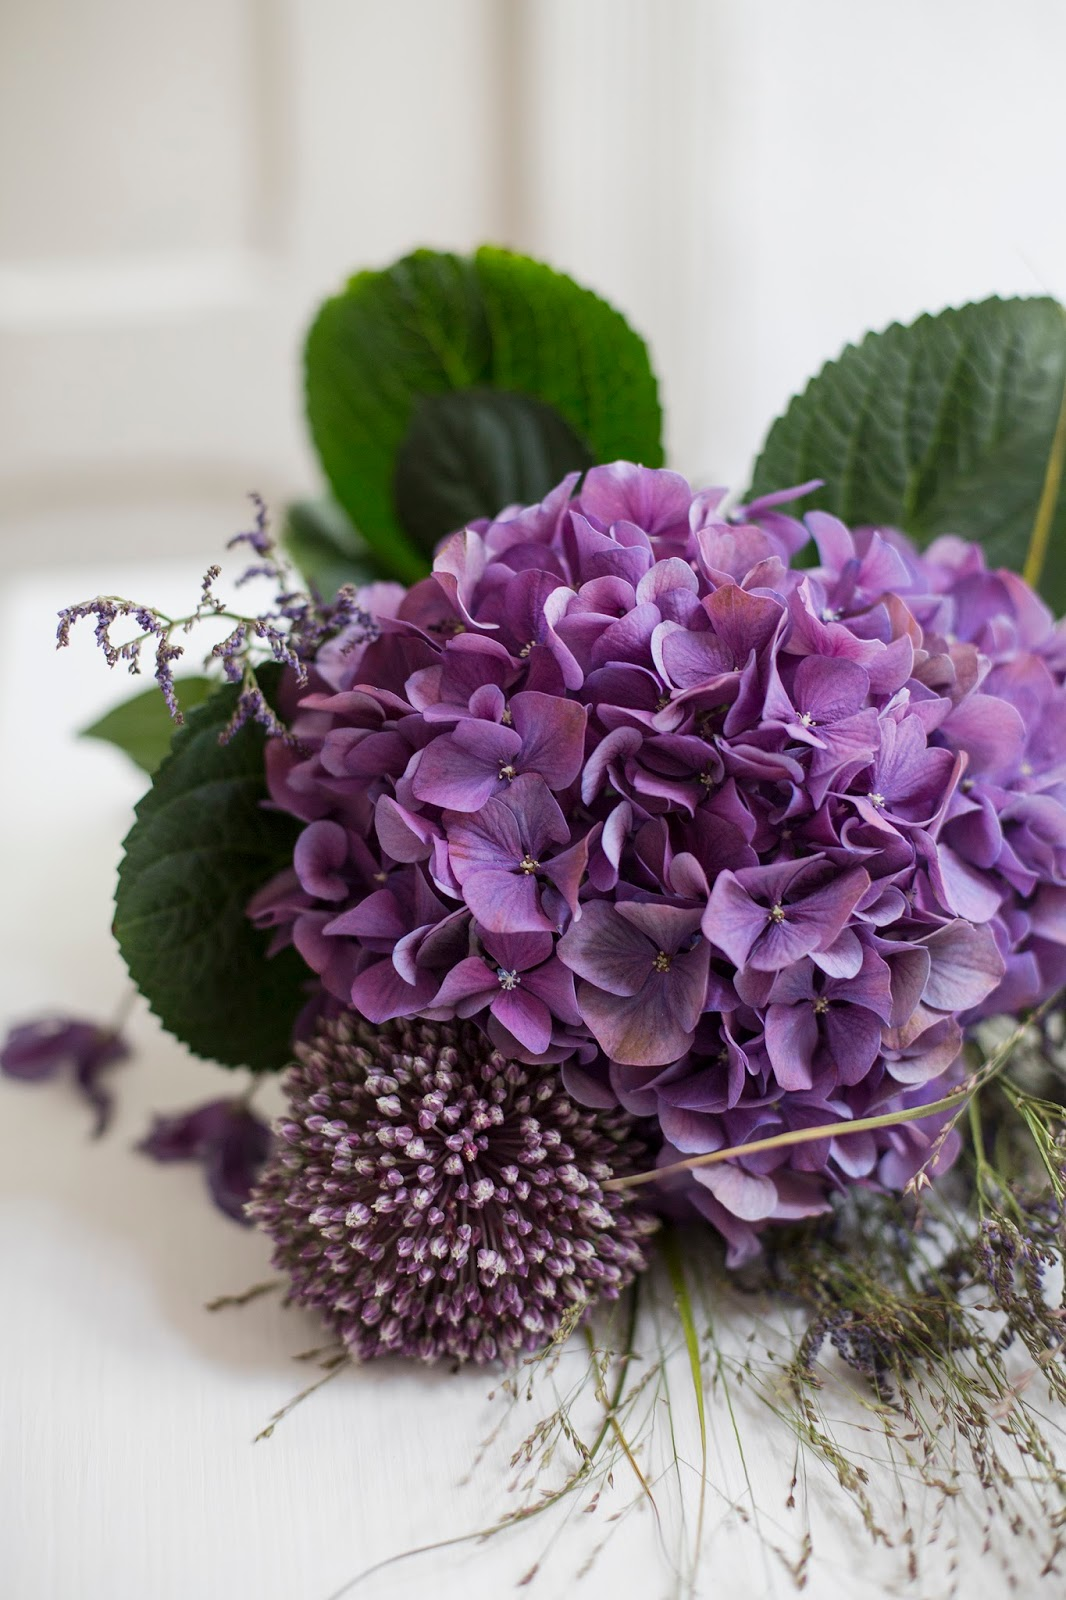 September Blumen in der Trendfarbe Lila